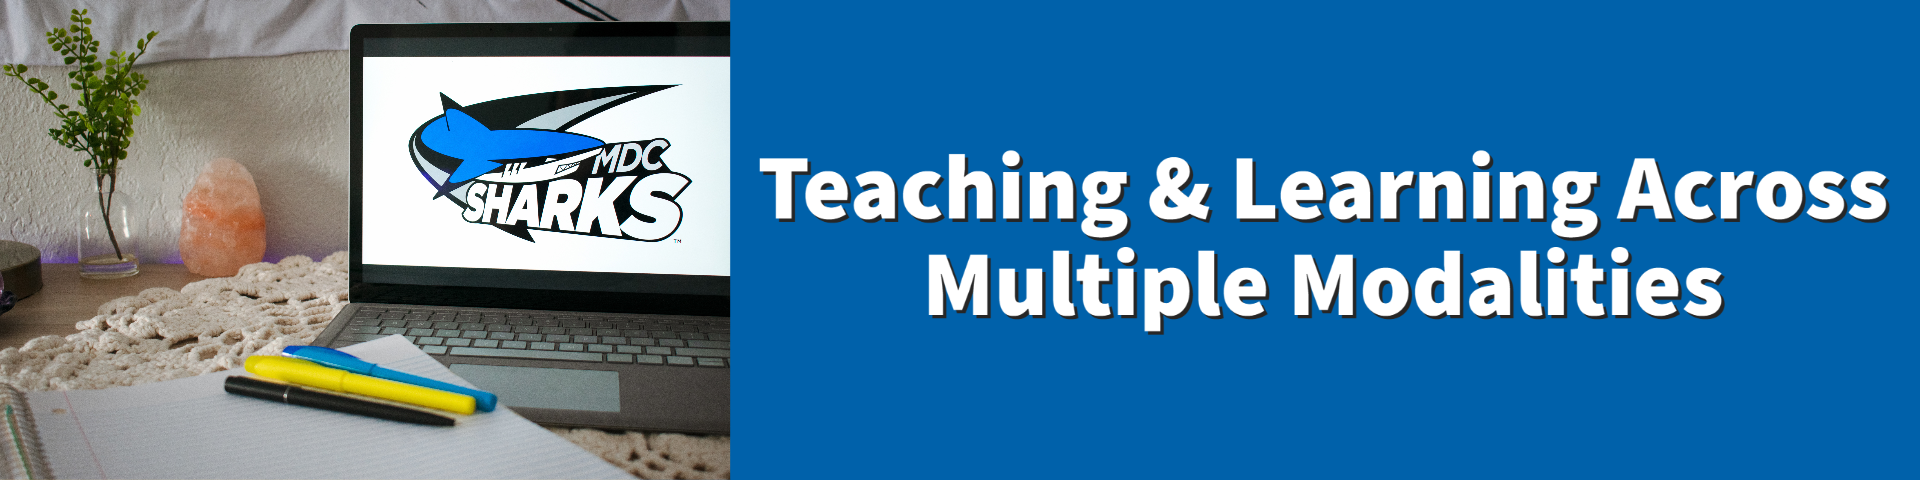 Graphic: Multiple Teaching Modalities with Shark Image